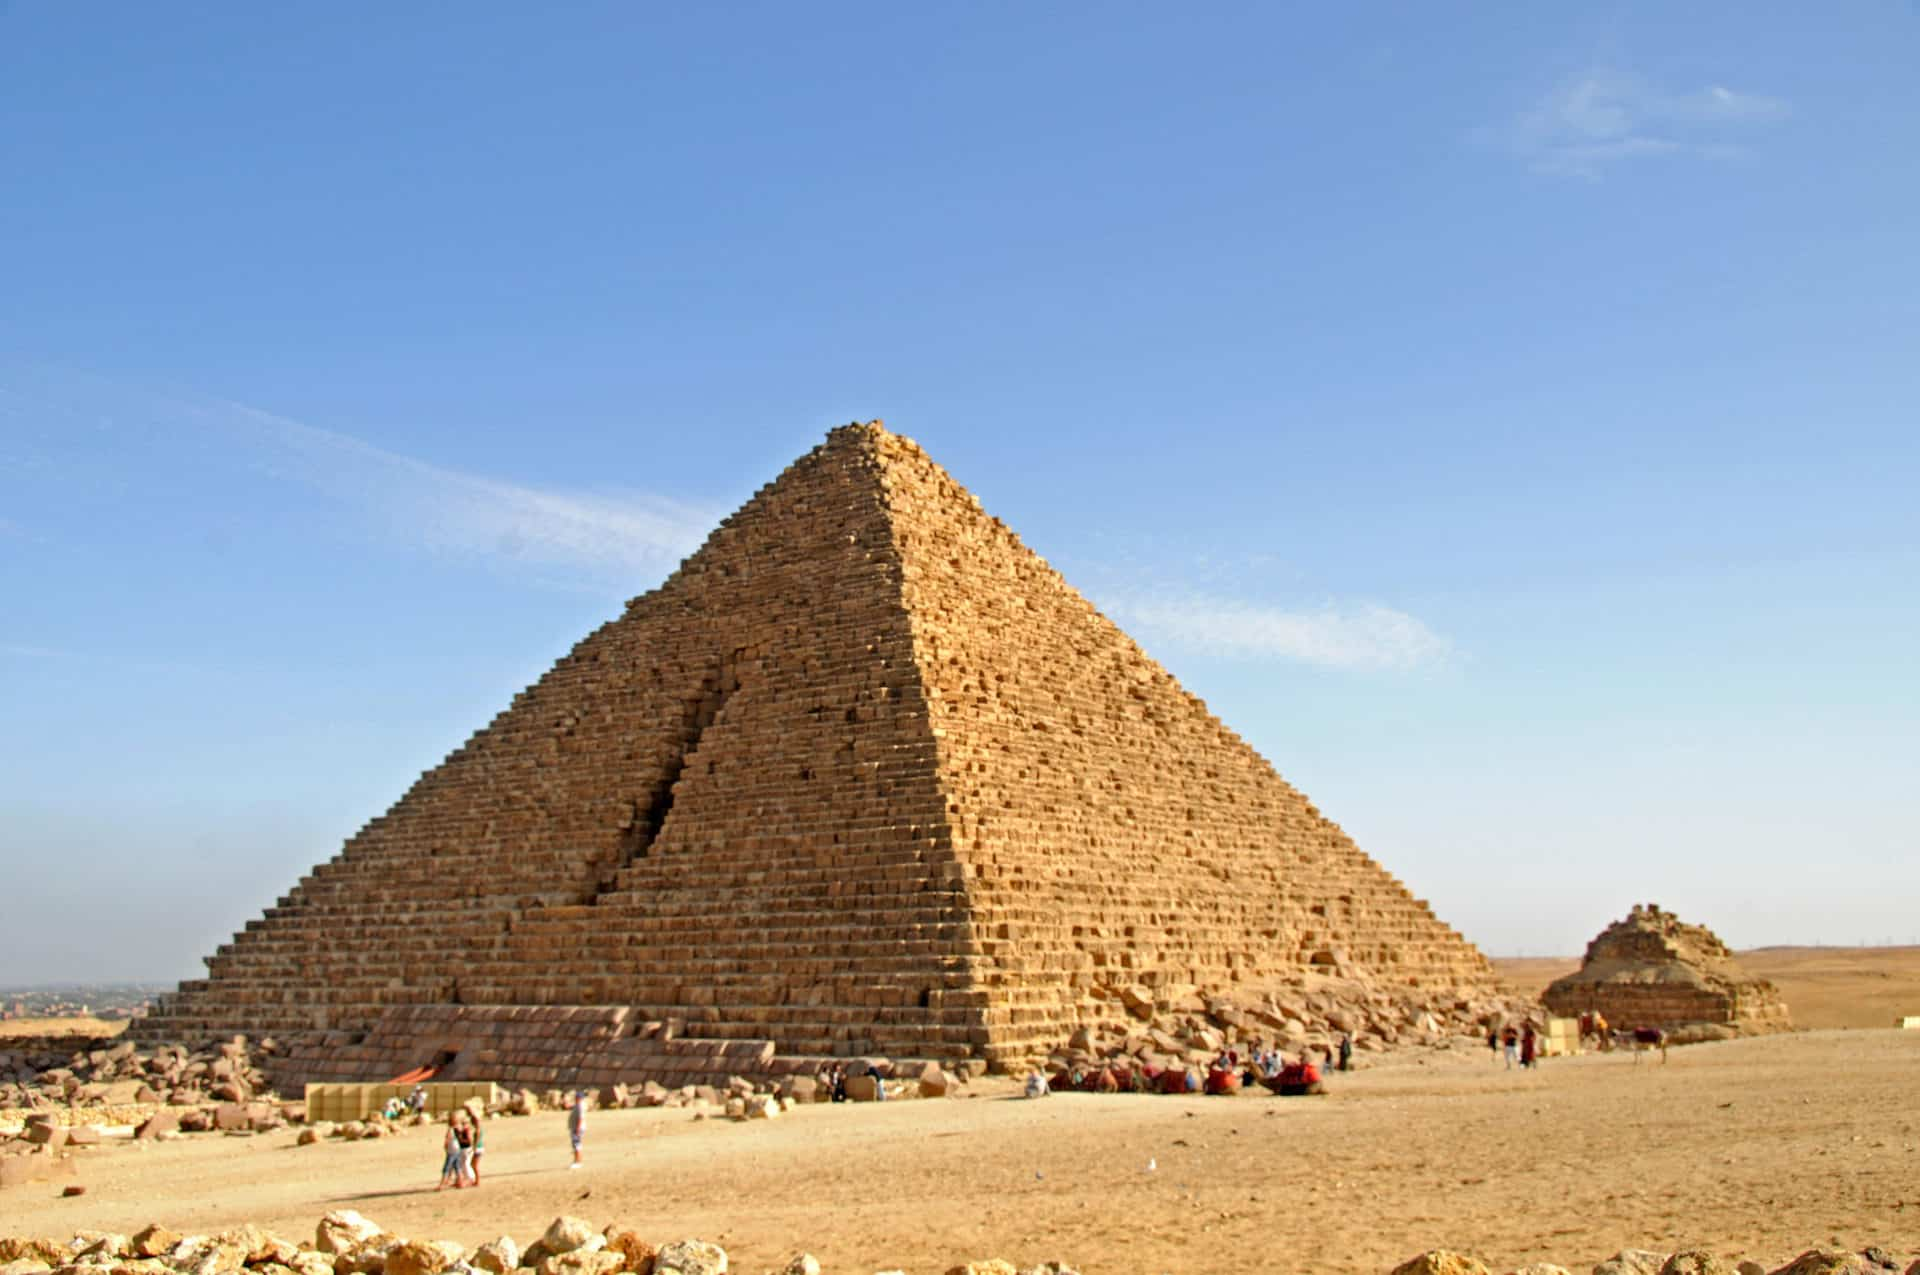 Pyramid of Menkaure, the great pyramids of Giza